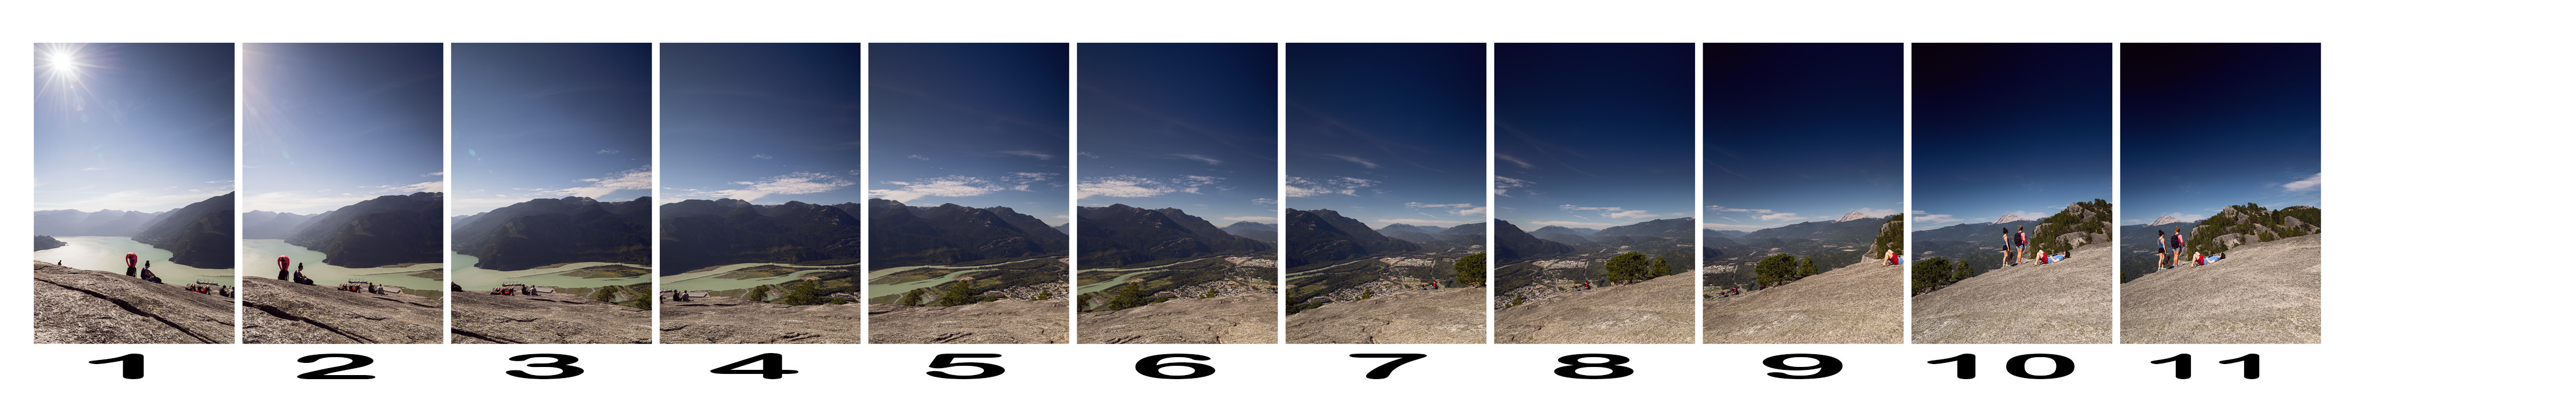 Onze photos raw pour assembler ce panorama / Source raw files